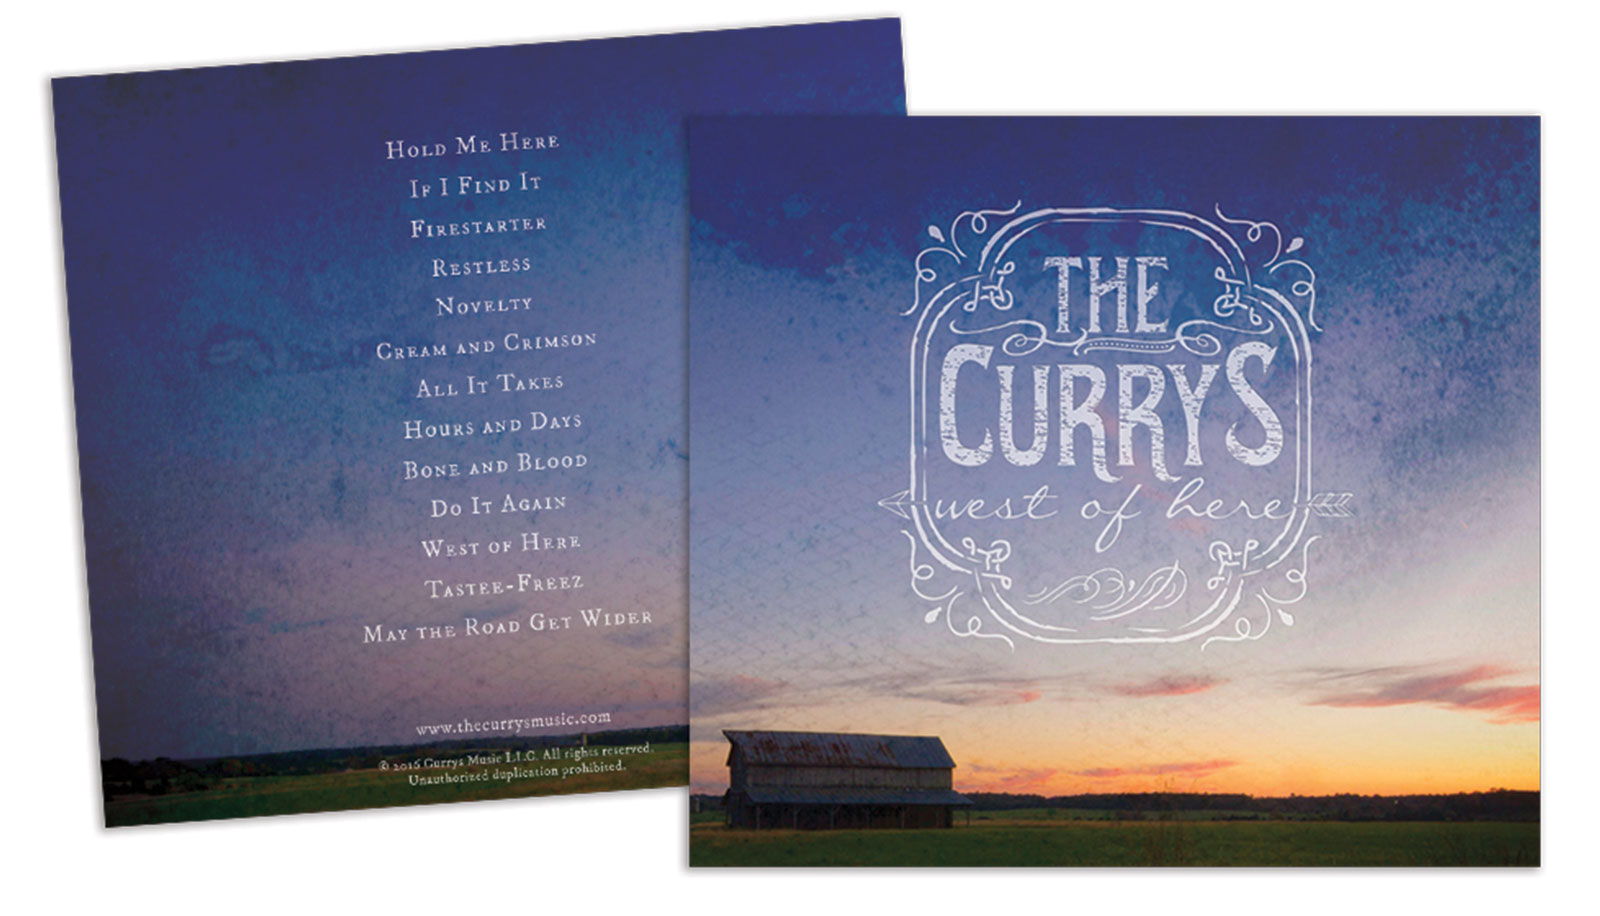 the currys album cover and logo design